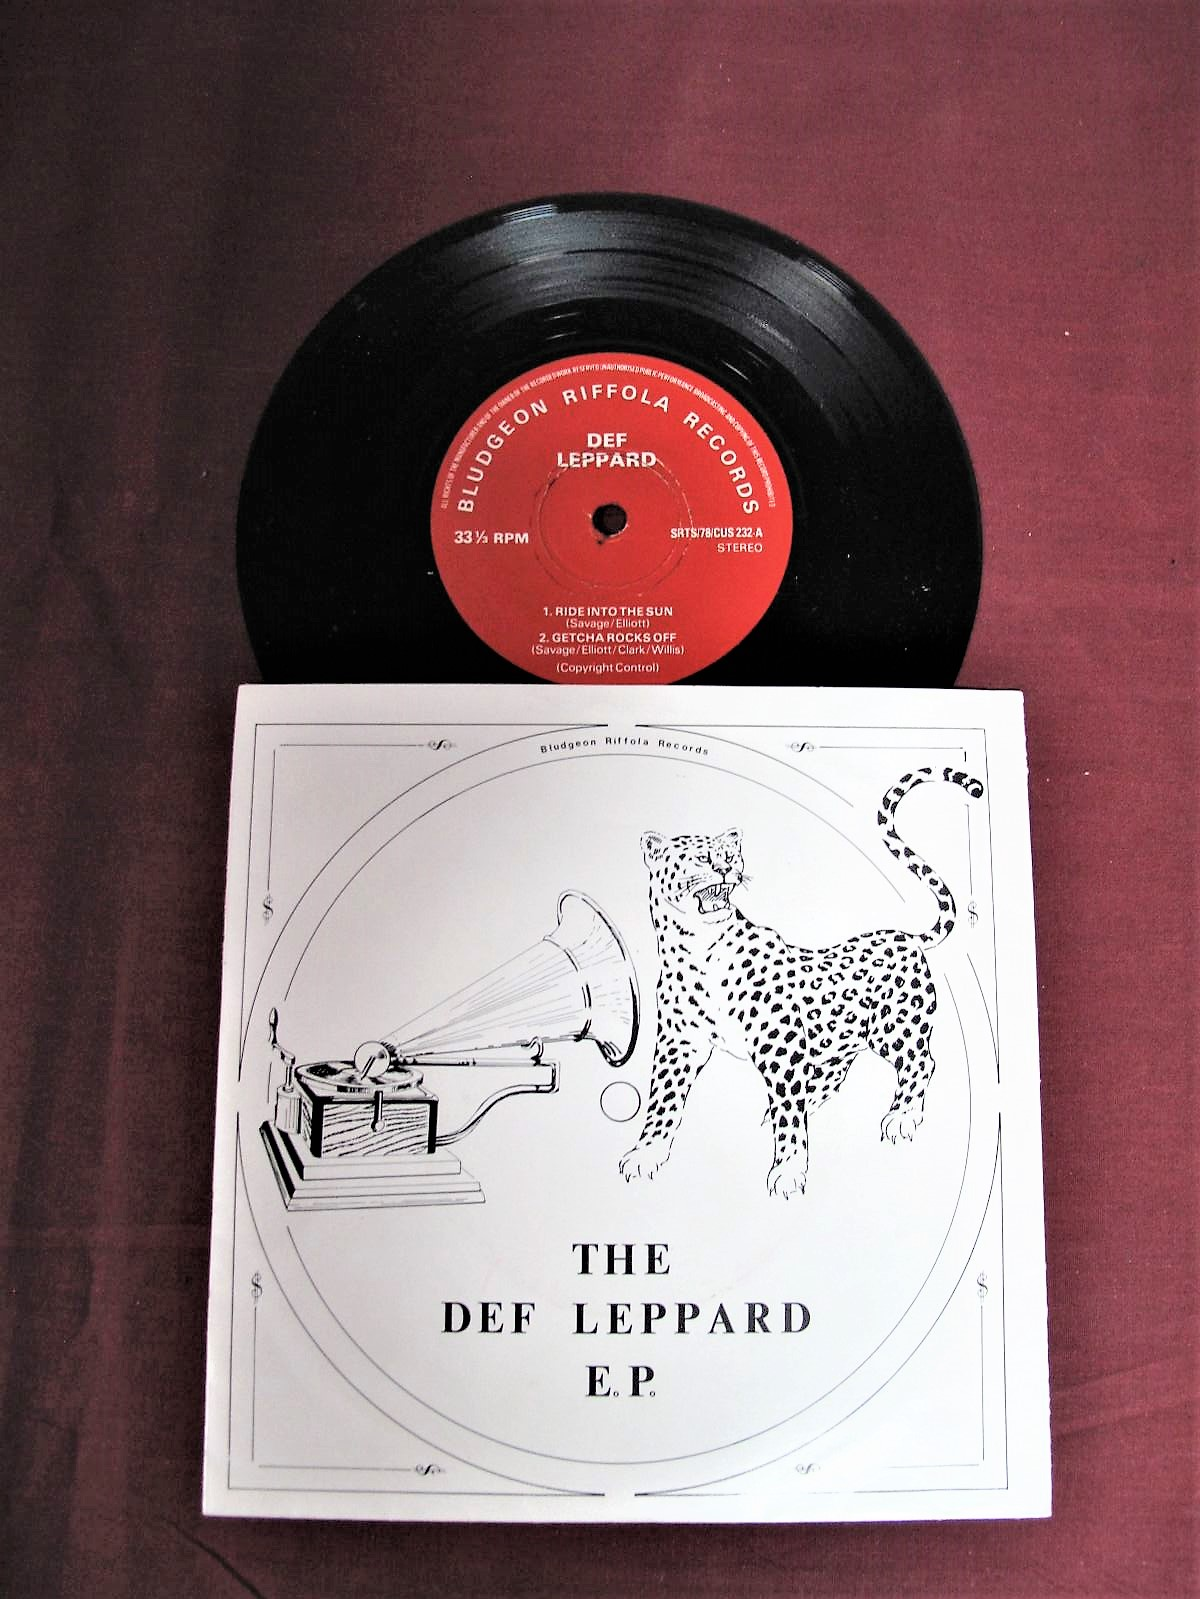 Lot 8 - Def Leppard -'Ride Into The Sun', rare first pressing EP, 1979, on the red 'Bludgeon Riffola